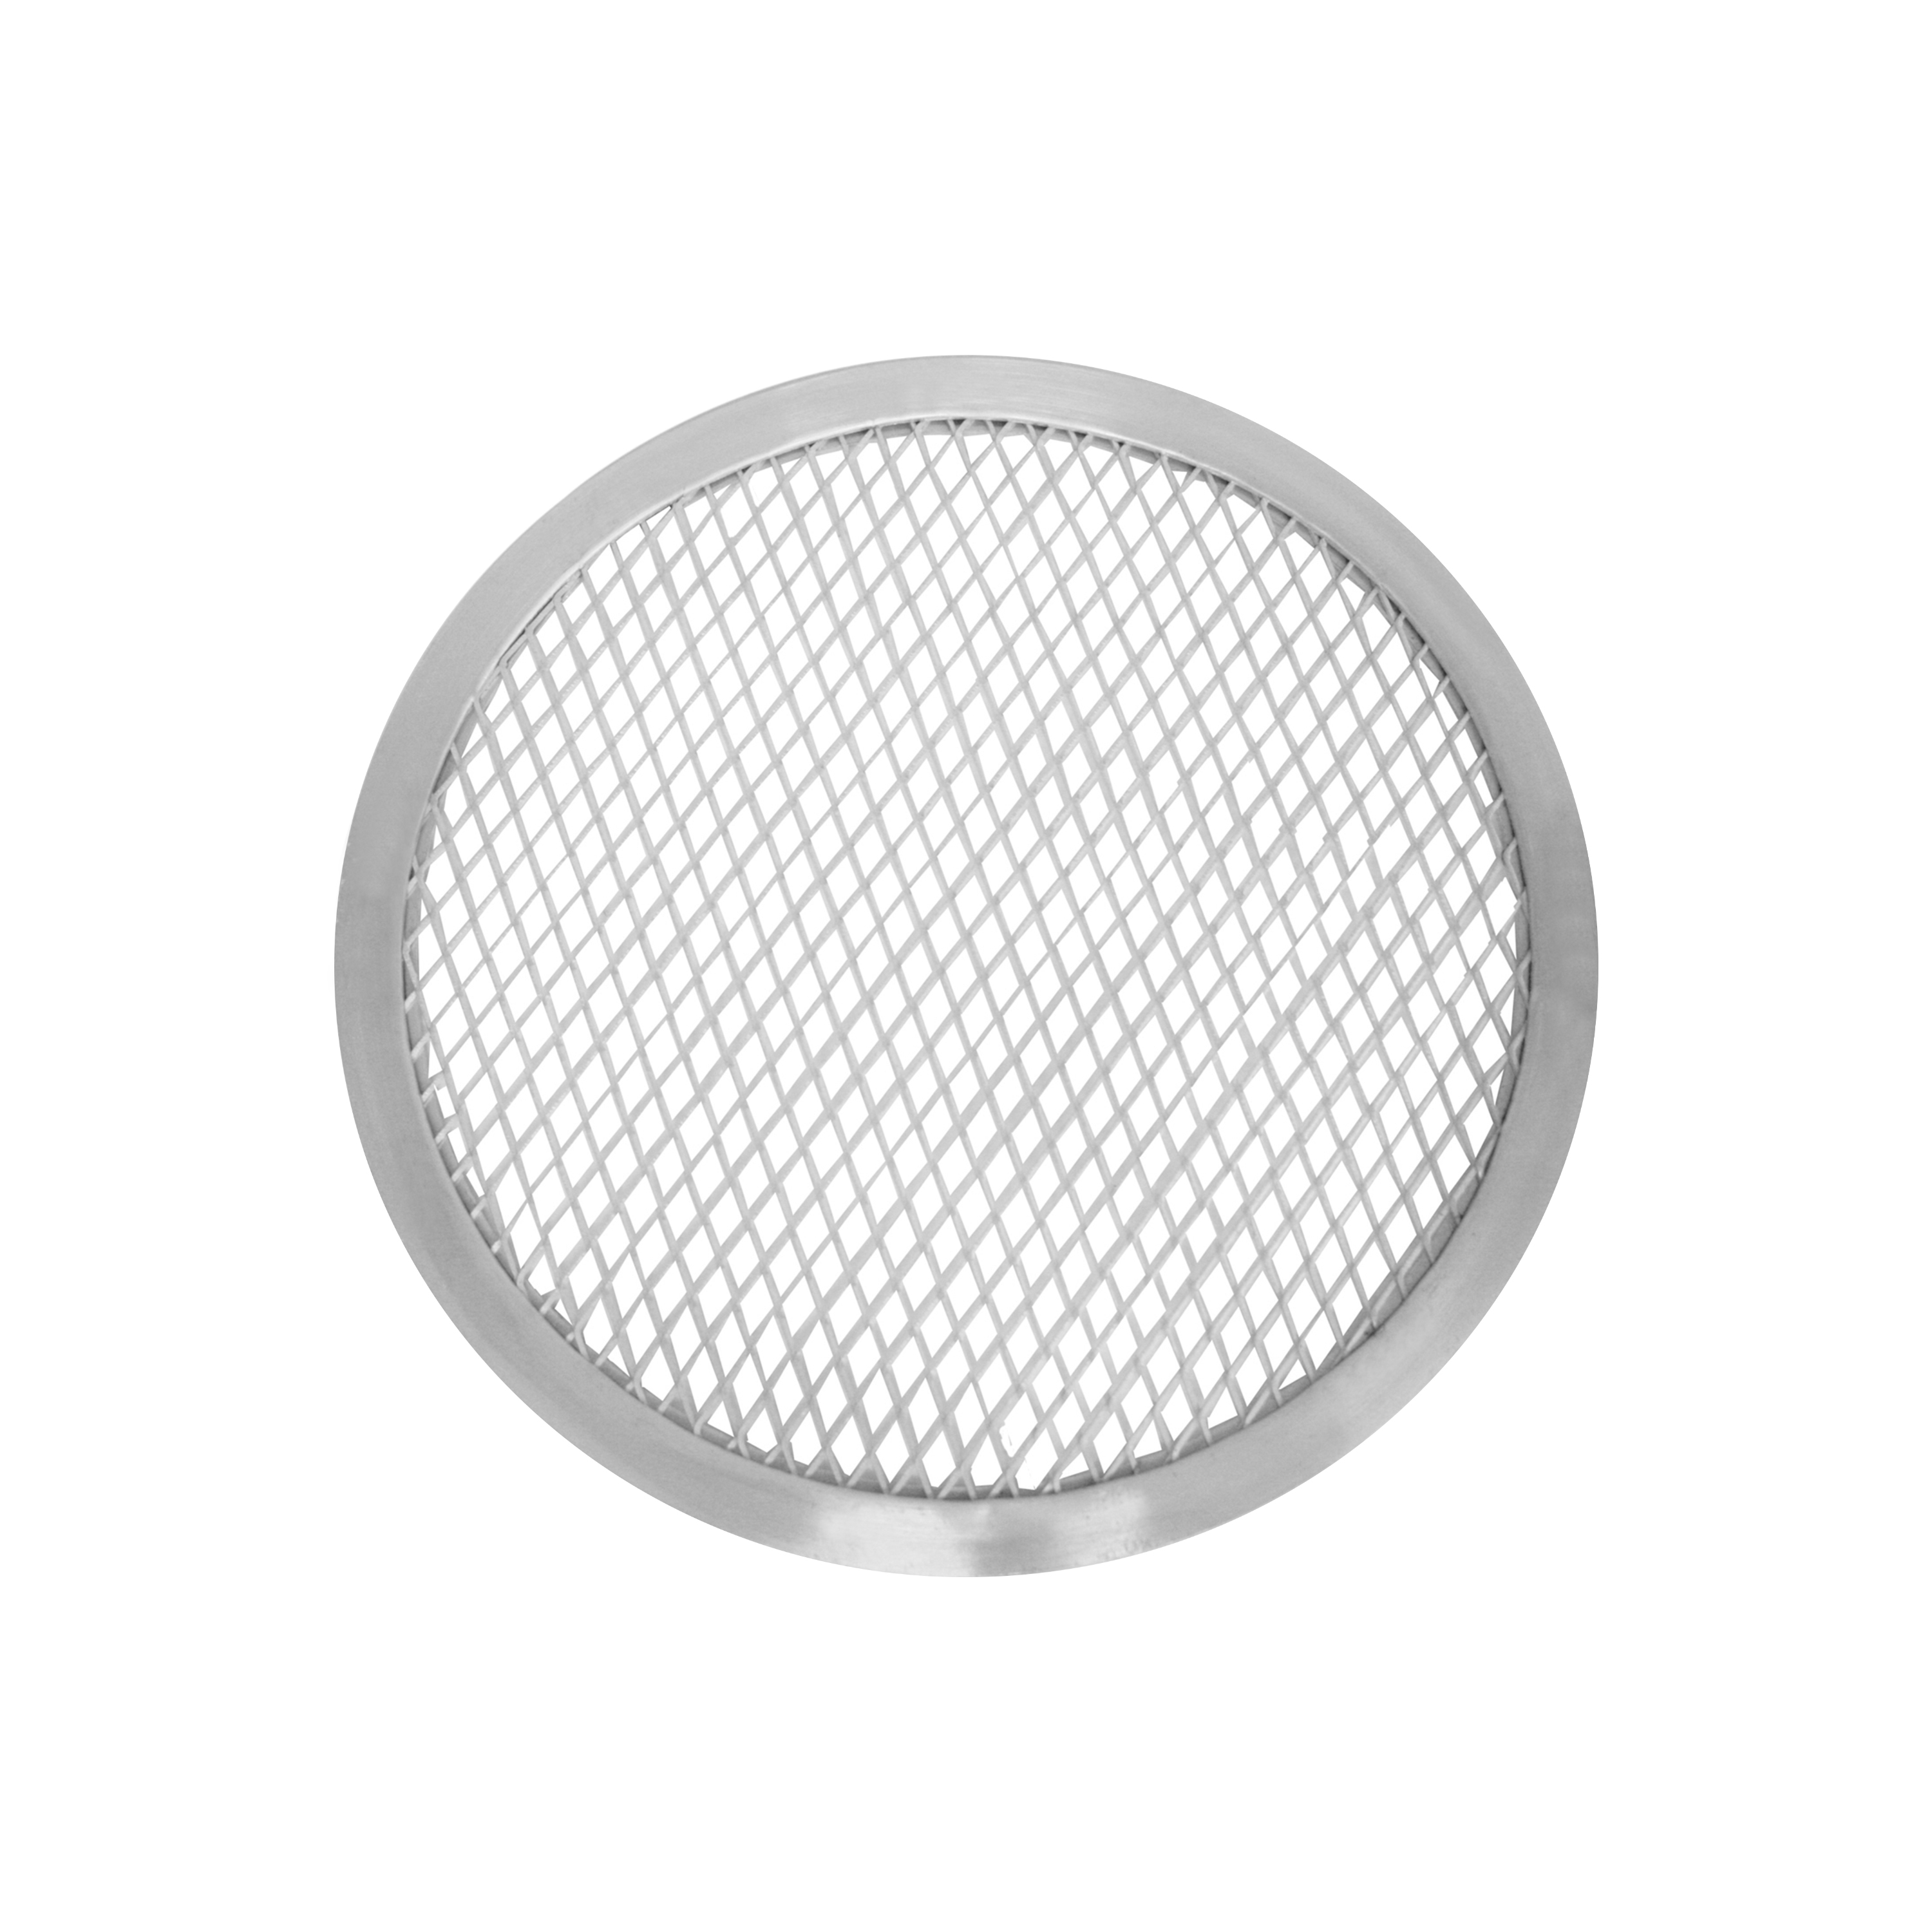 """11"""" Seamless Rim Pizza Screen, Comes In Each by Thunder Group"""